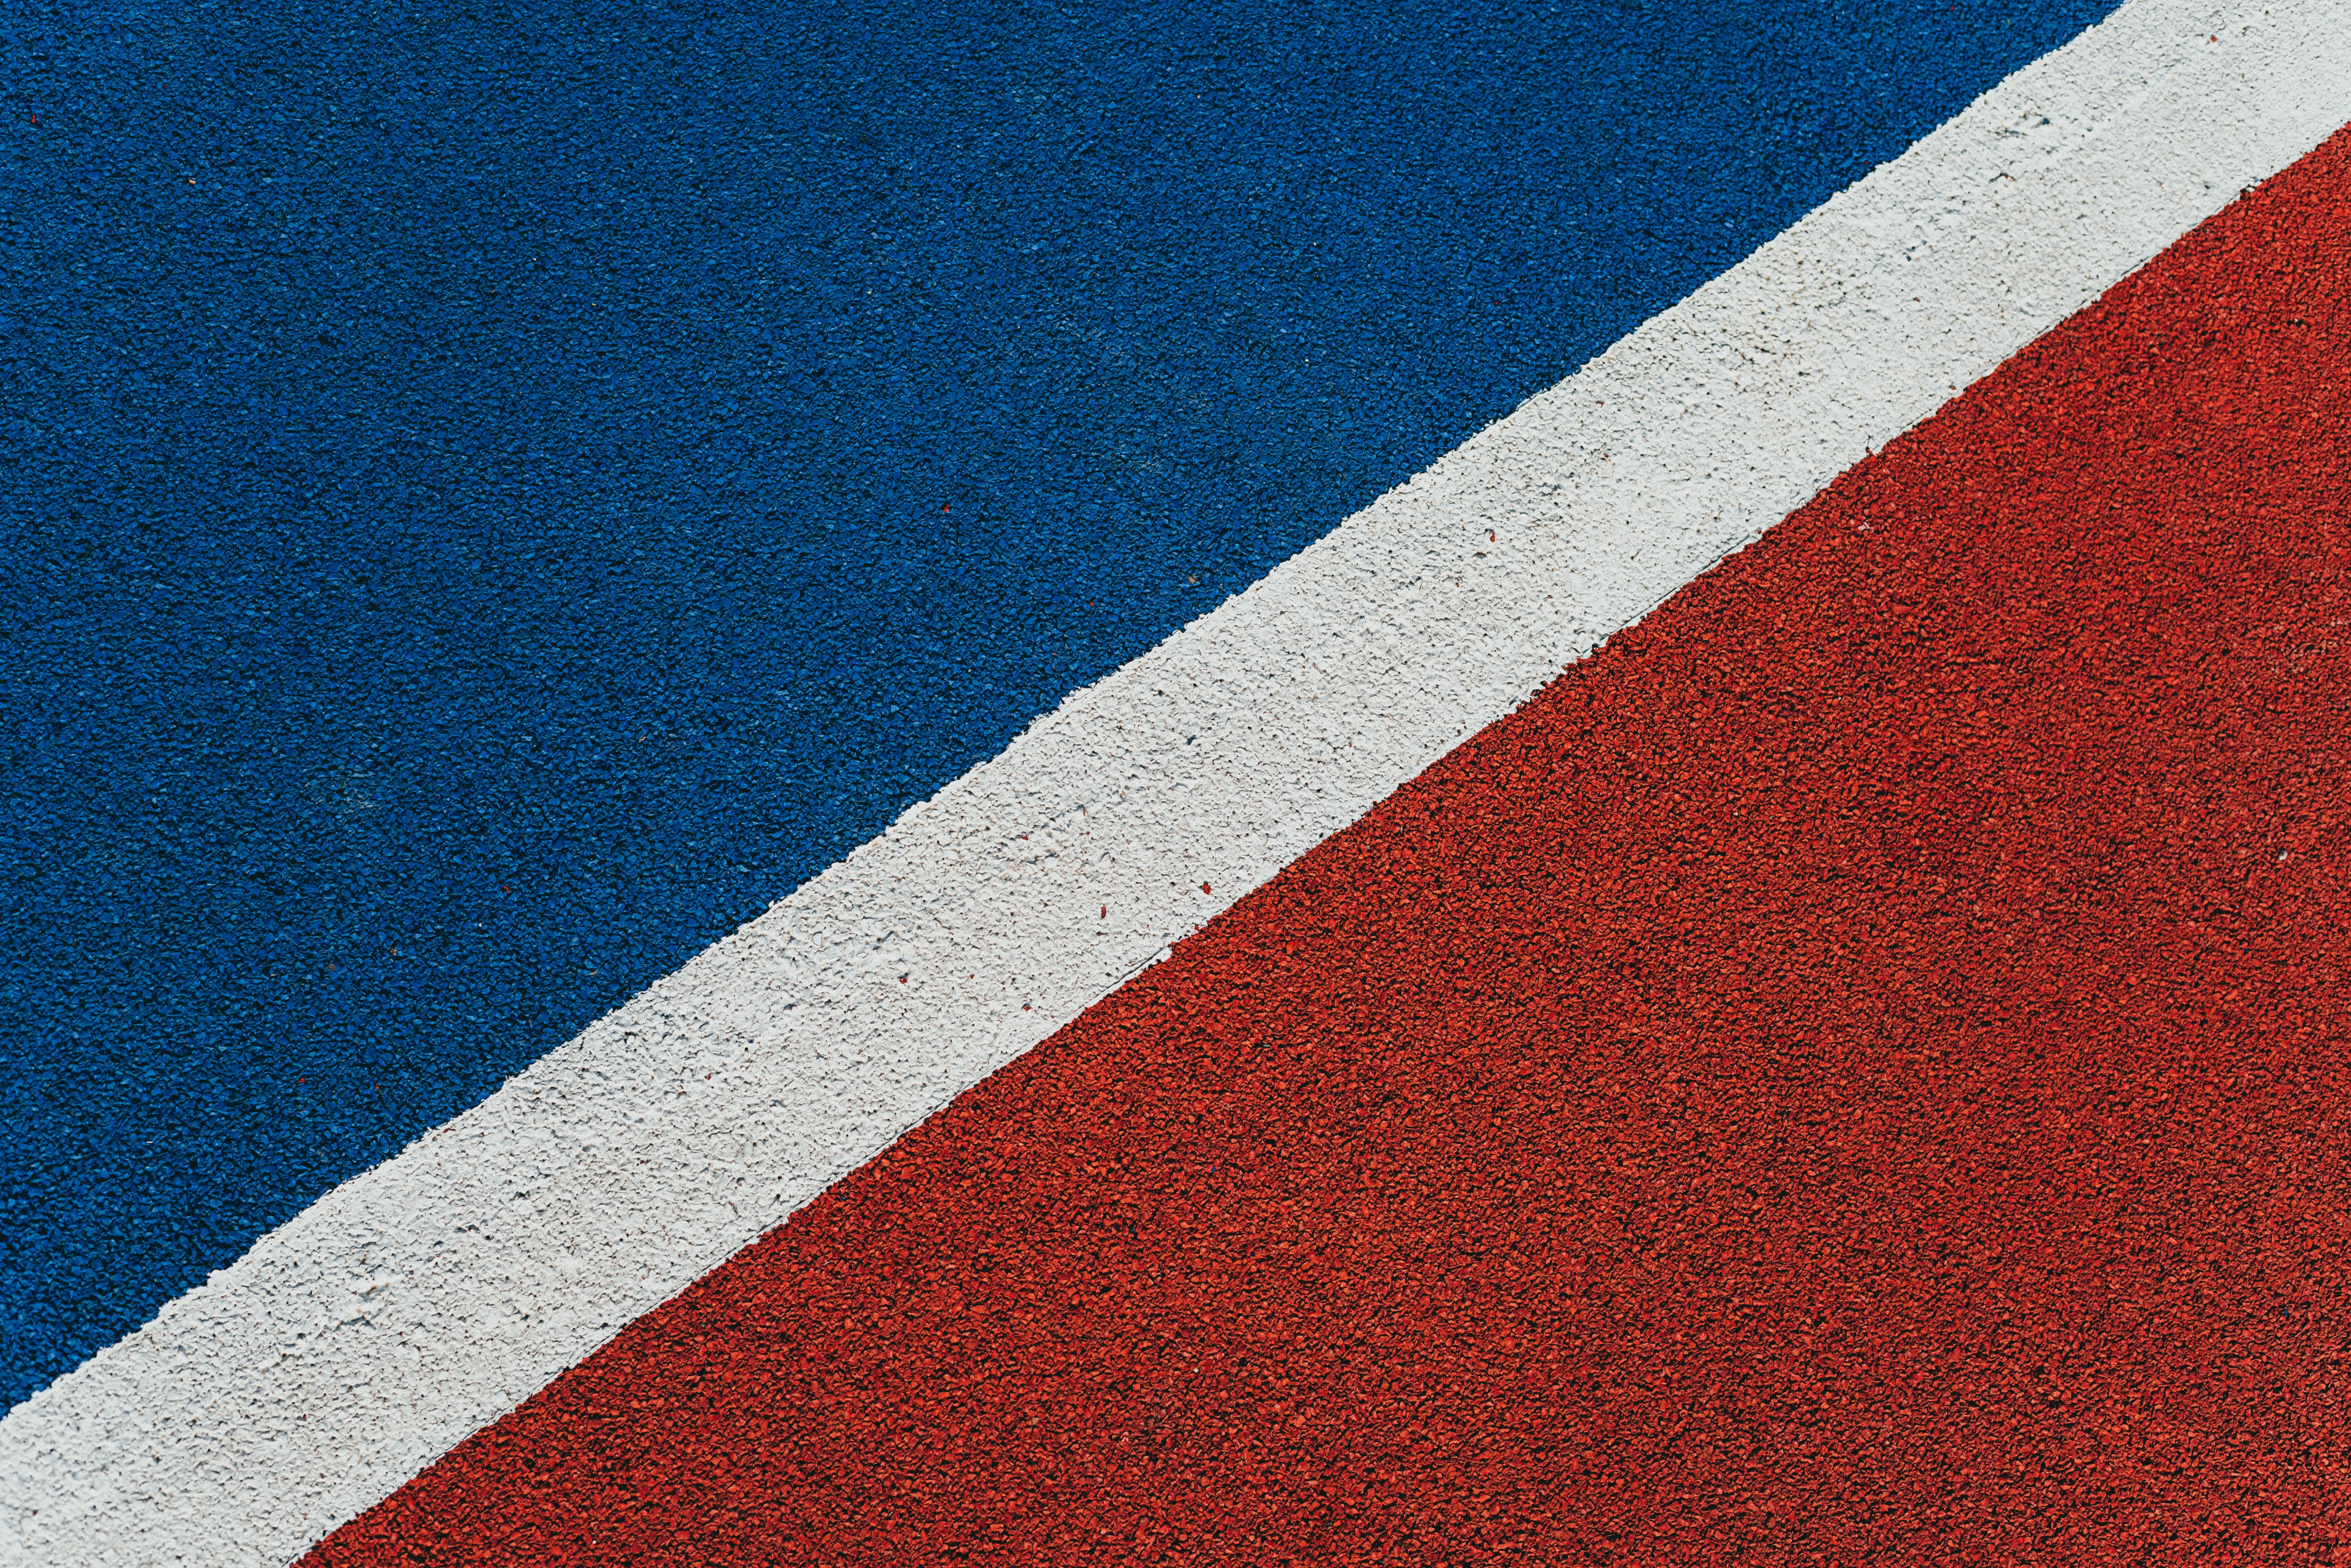 Wallpaper 4k Blue Red Lines Texture 4k Blue Red Lines Texture 4k Wallpapers